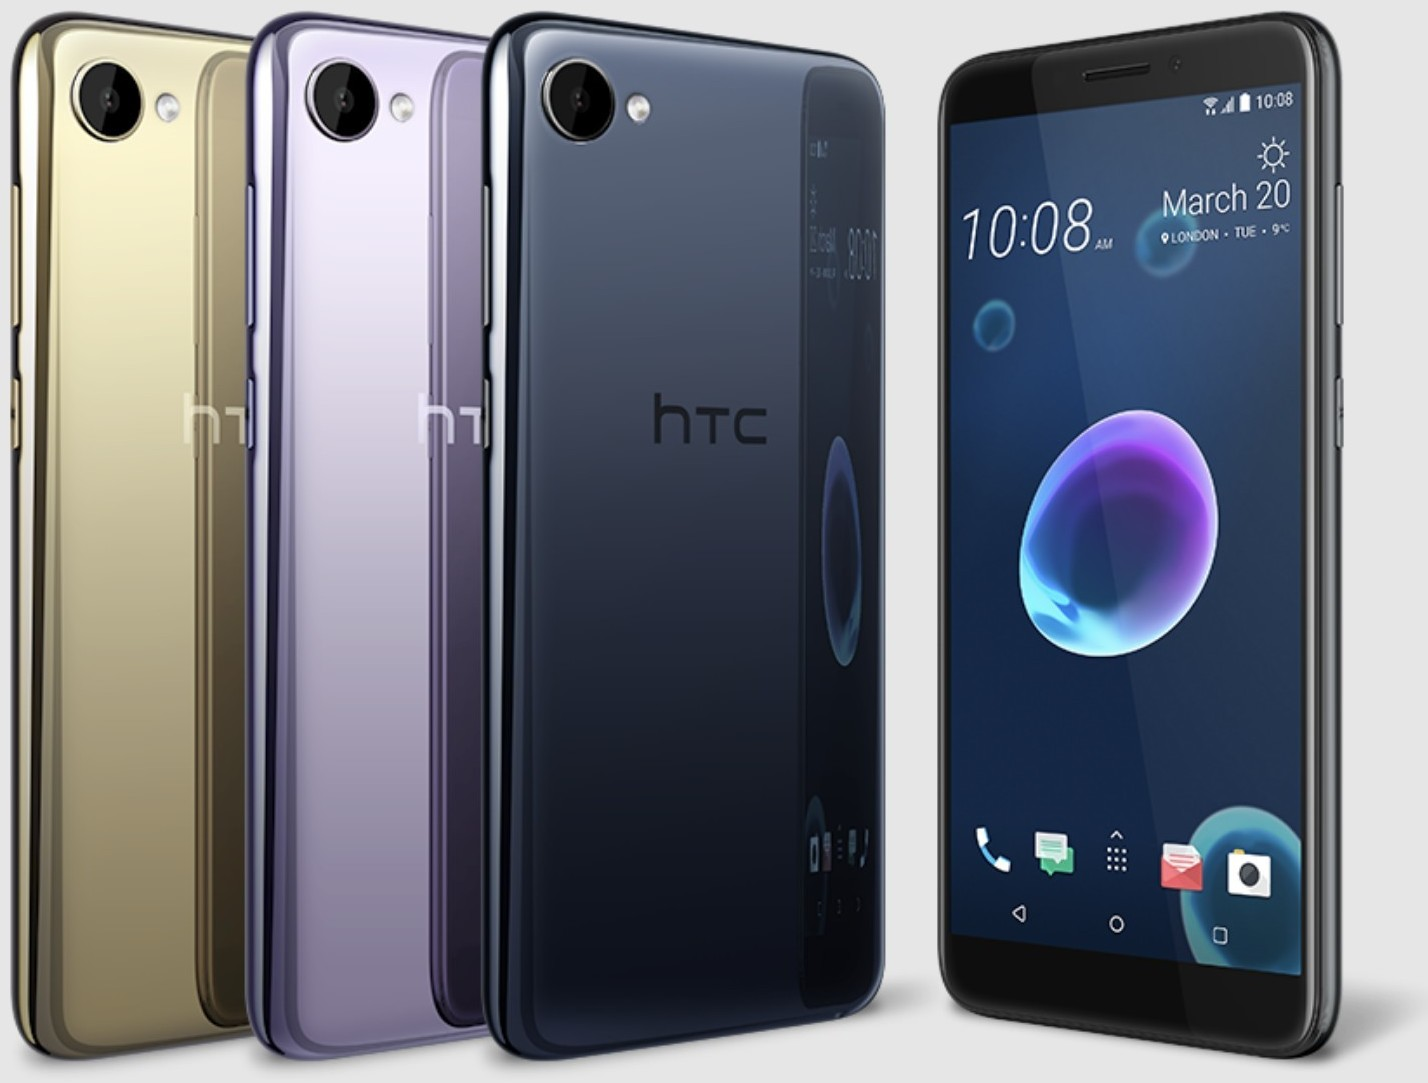 HTC Desire 12, Desire 12+ smartphones launched in India, prices start at Rs 15,800